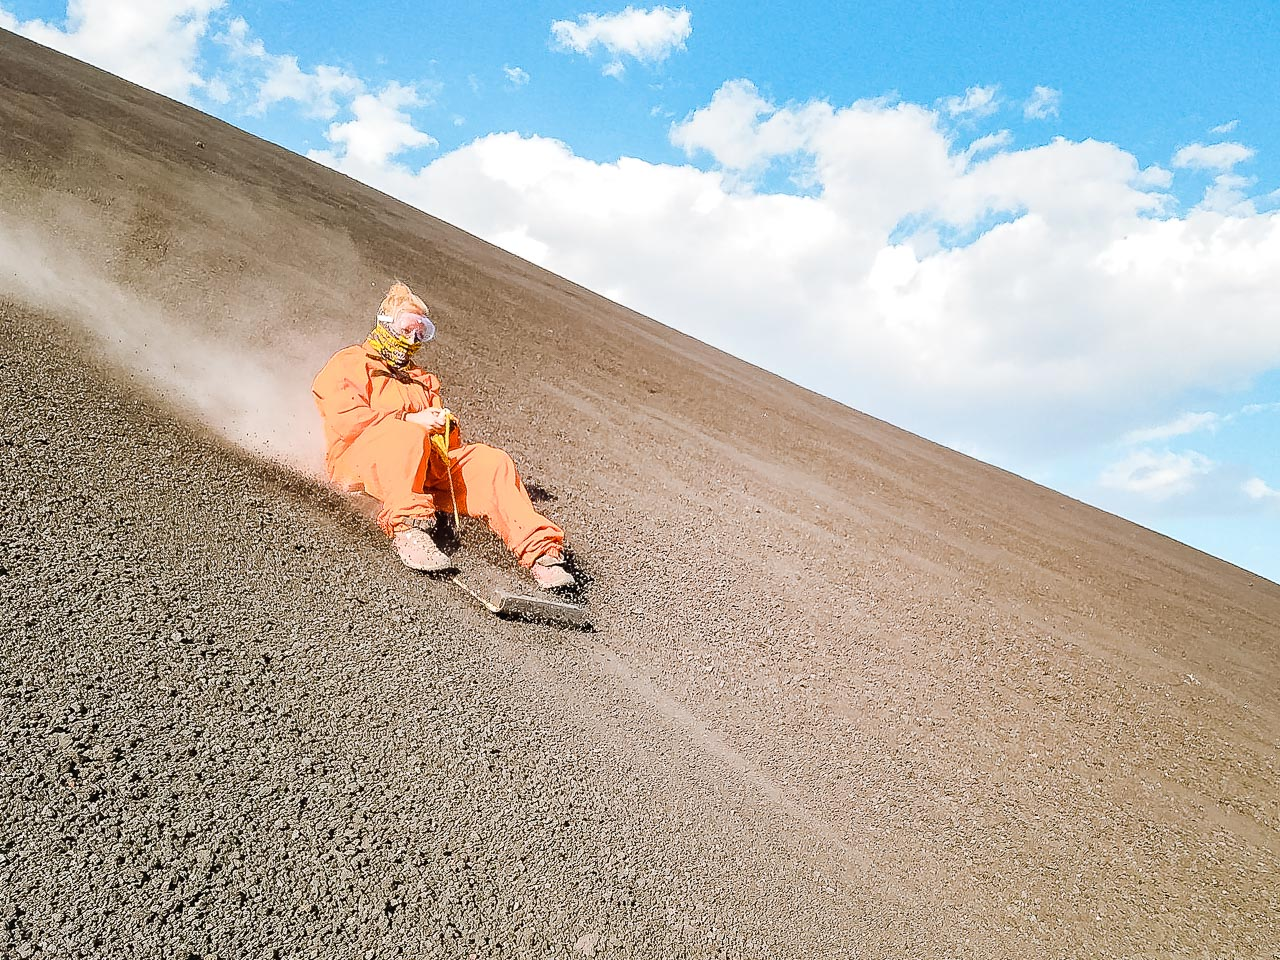 Volcano boarding is an adrenaline activity, and we enjoyed it very much.